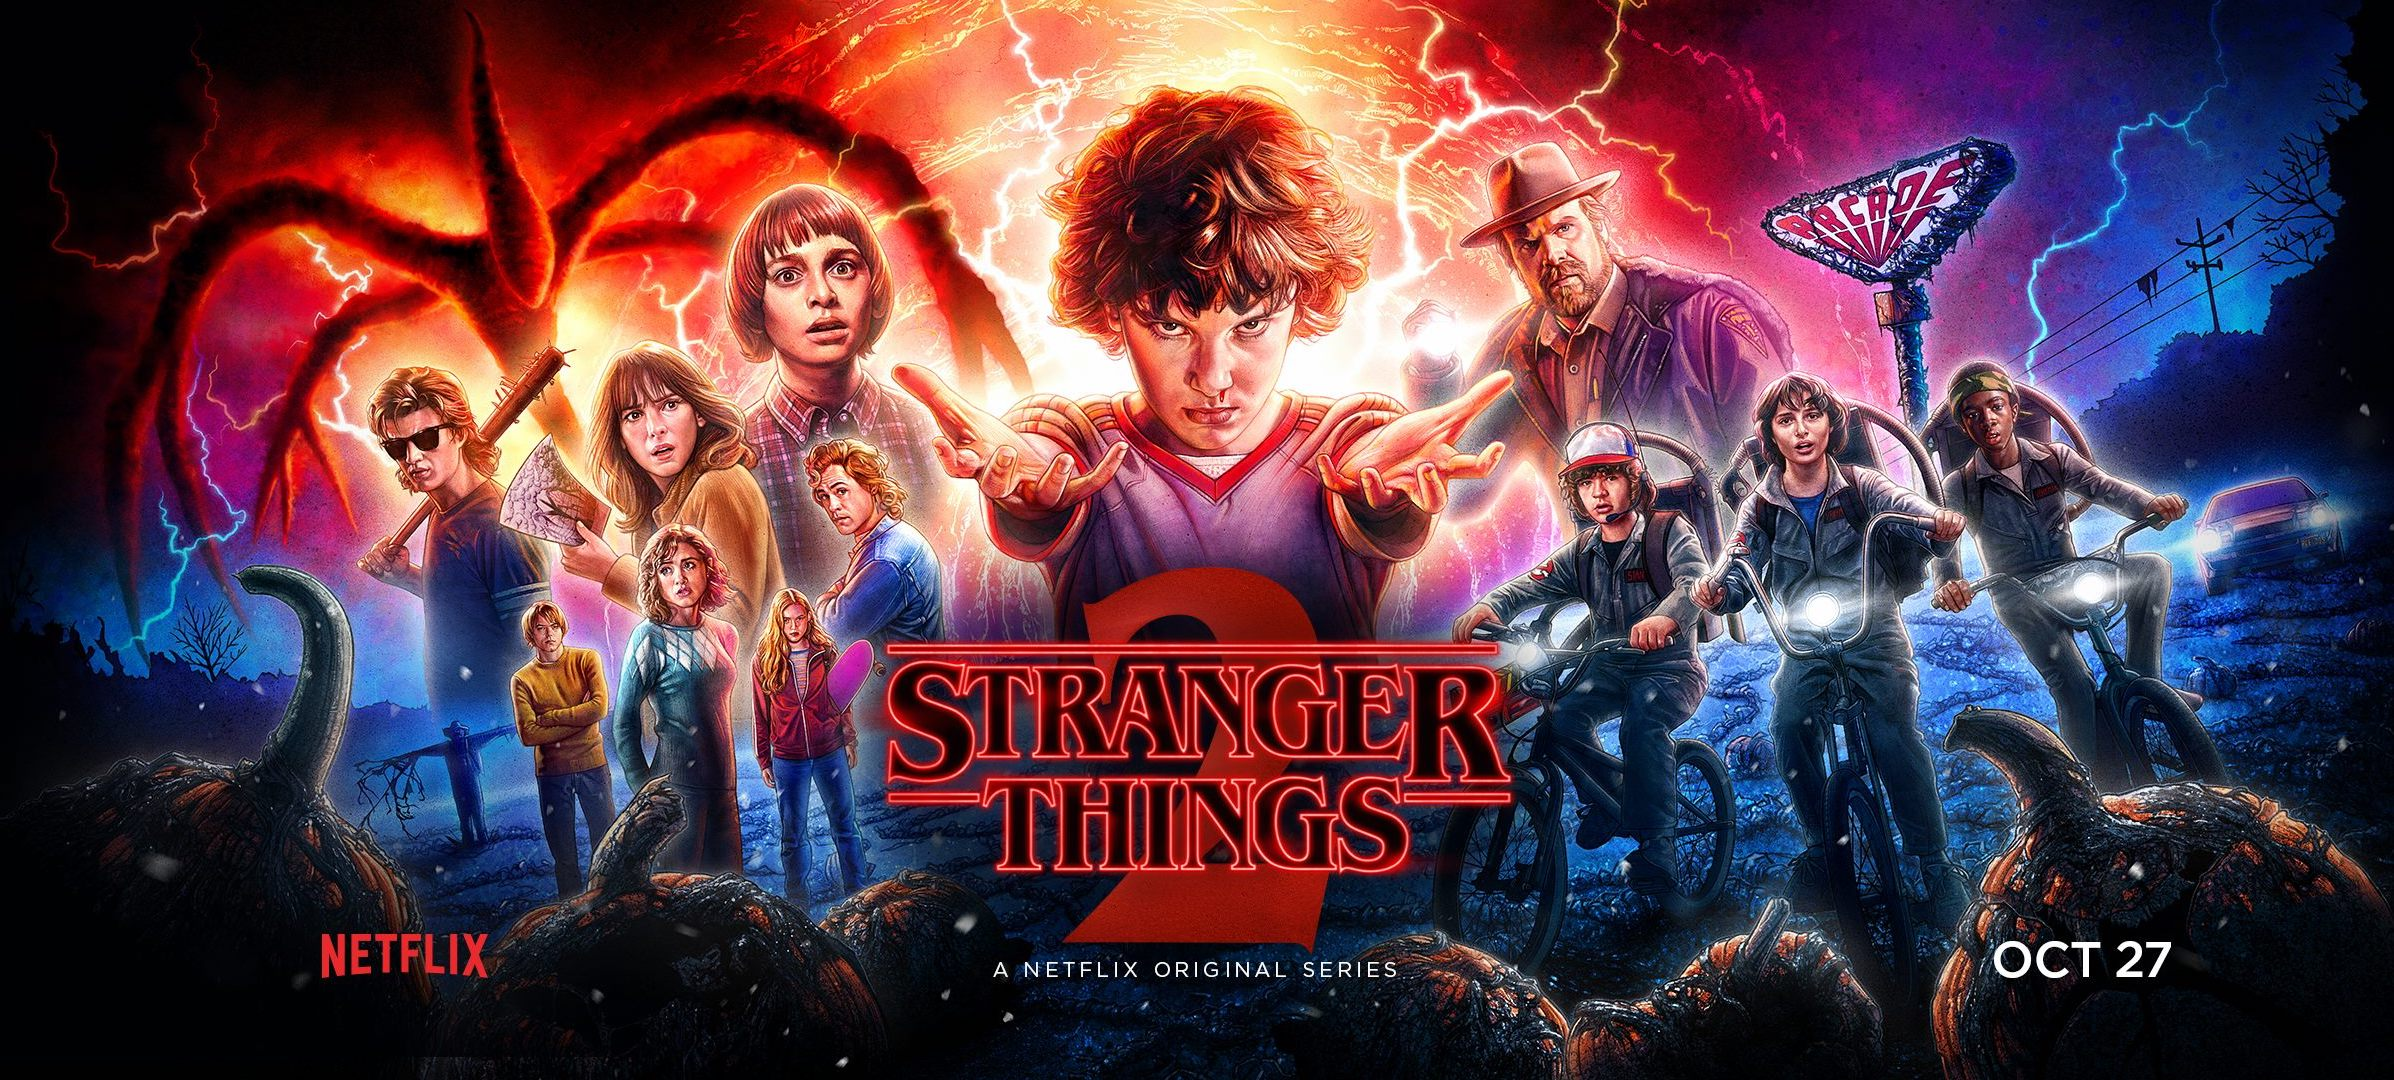 Netflix Stranger Things Season 3 release date, cast